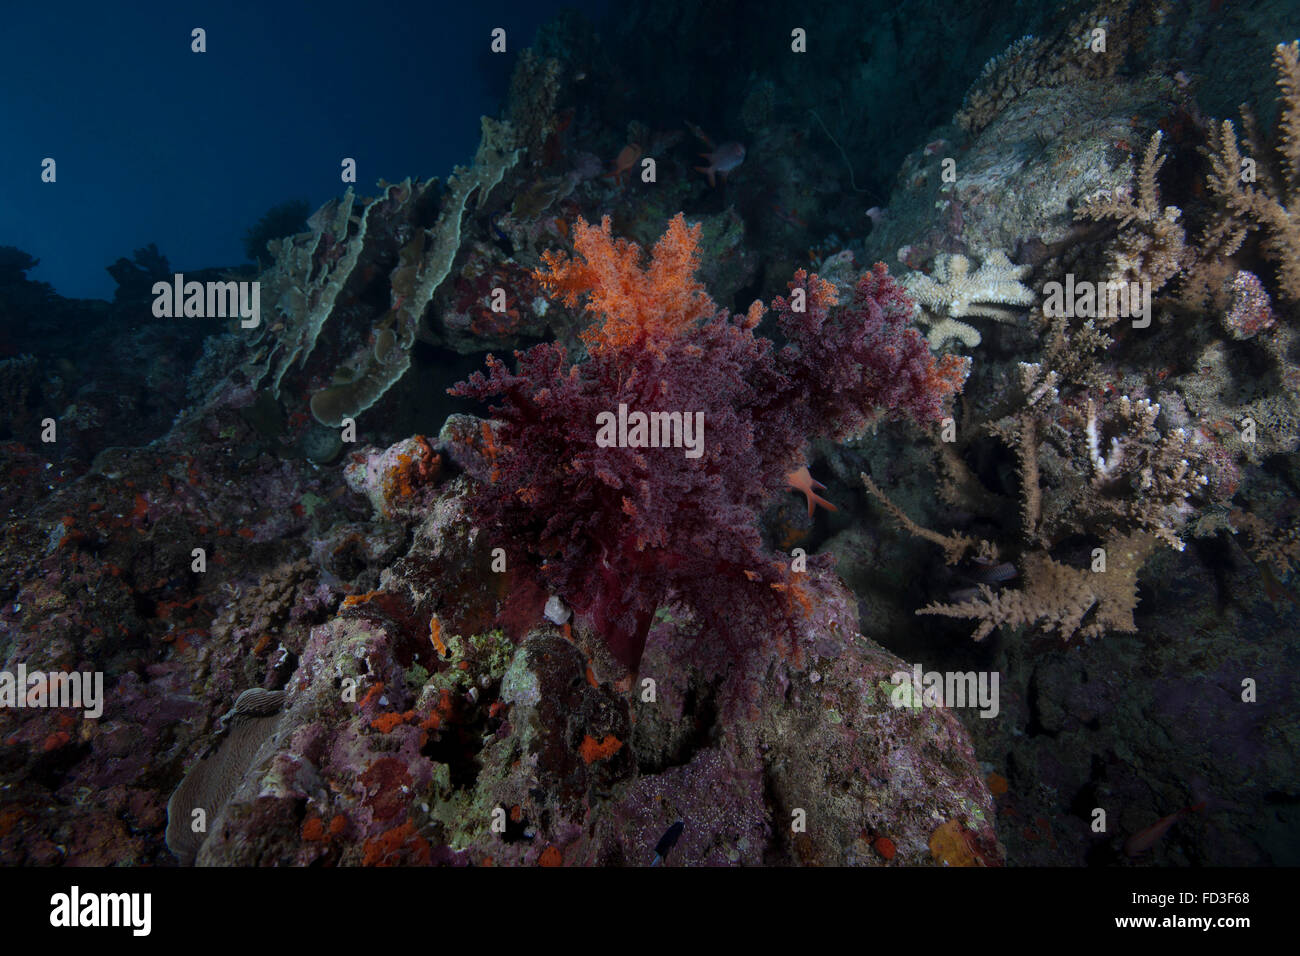 Soft coral on a healthy Fijian reef. - Stock Image